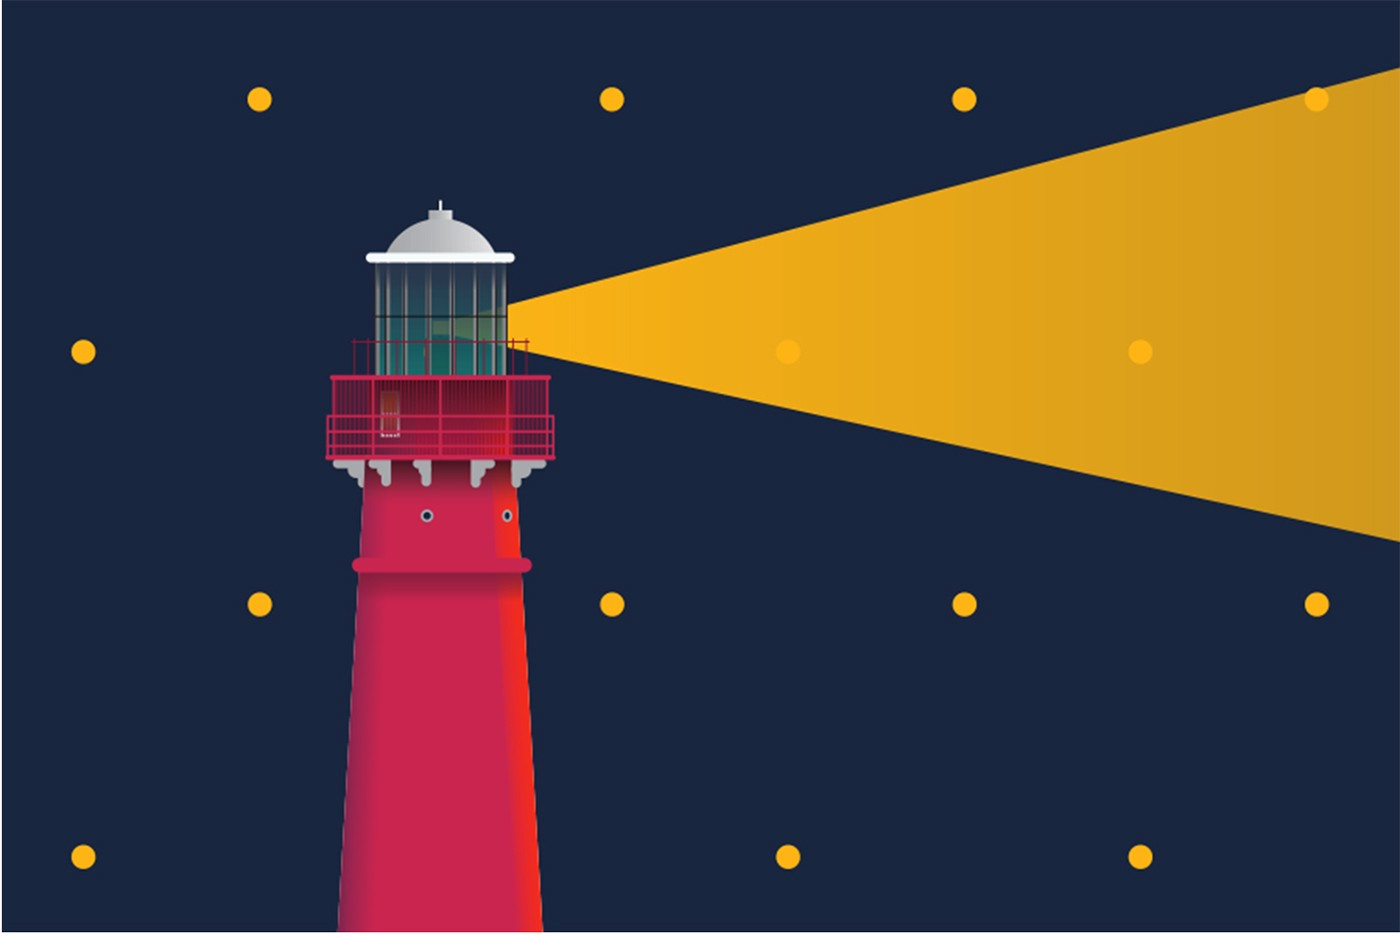 Colorful illustration of a lighthouse with a beam of light coming from it